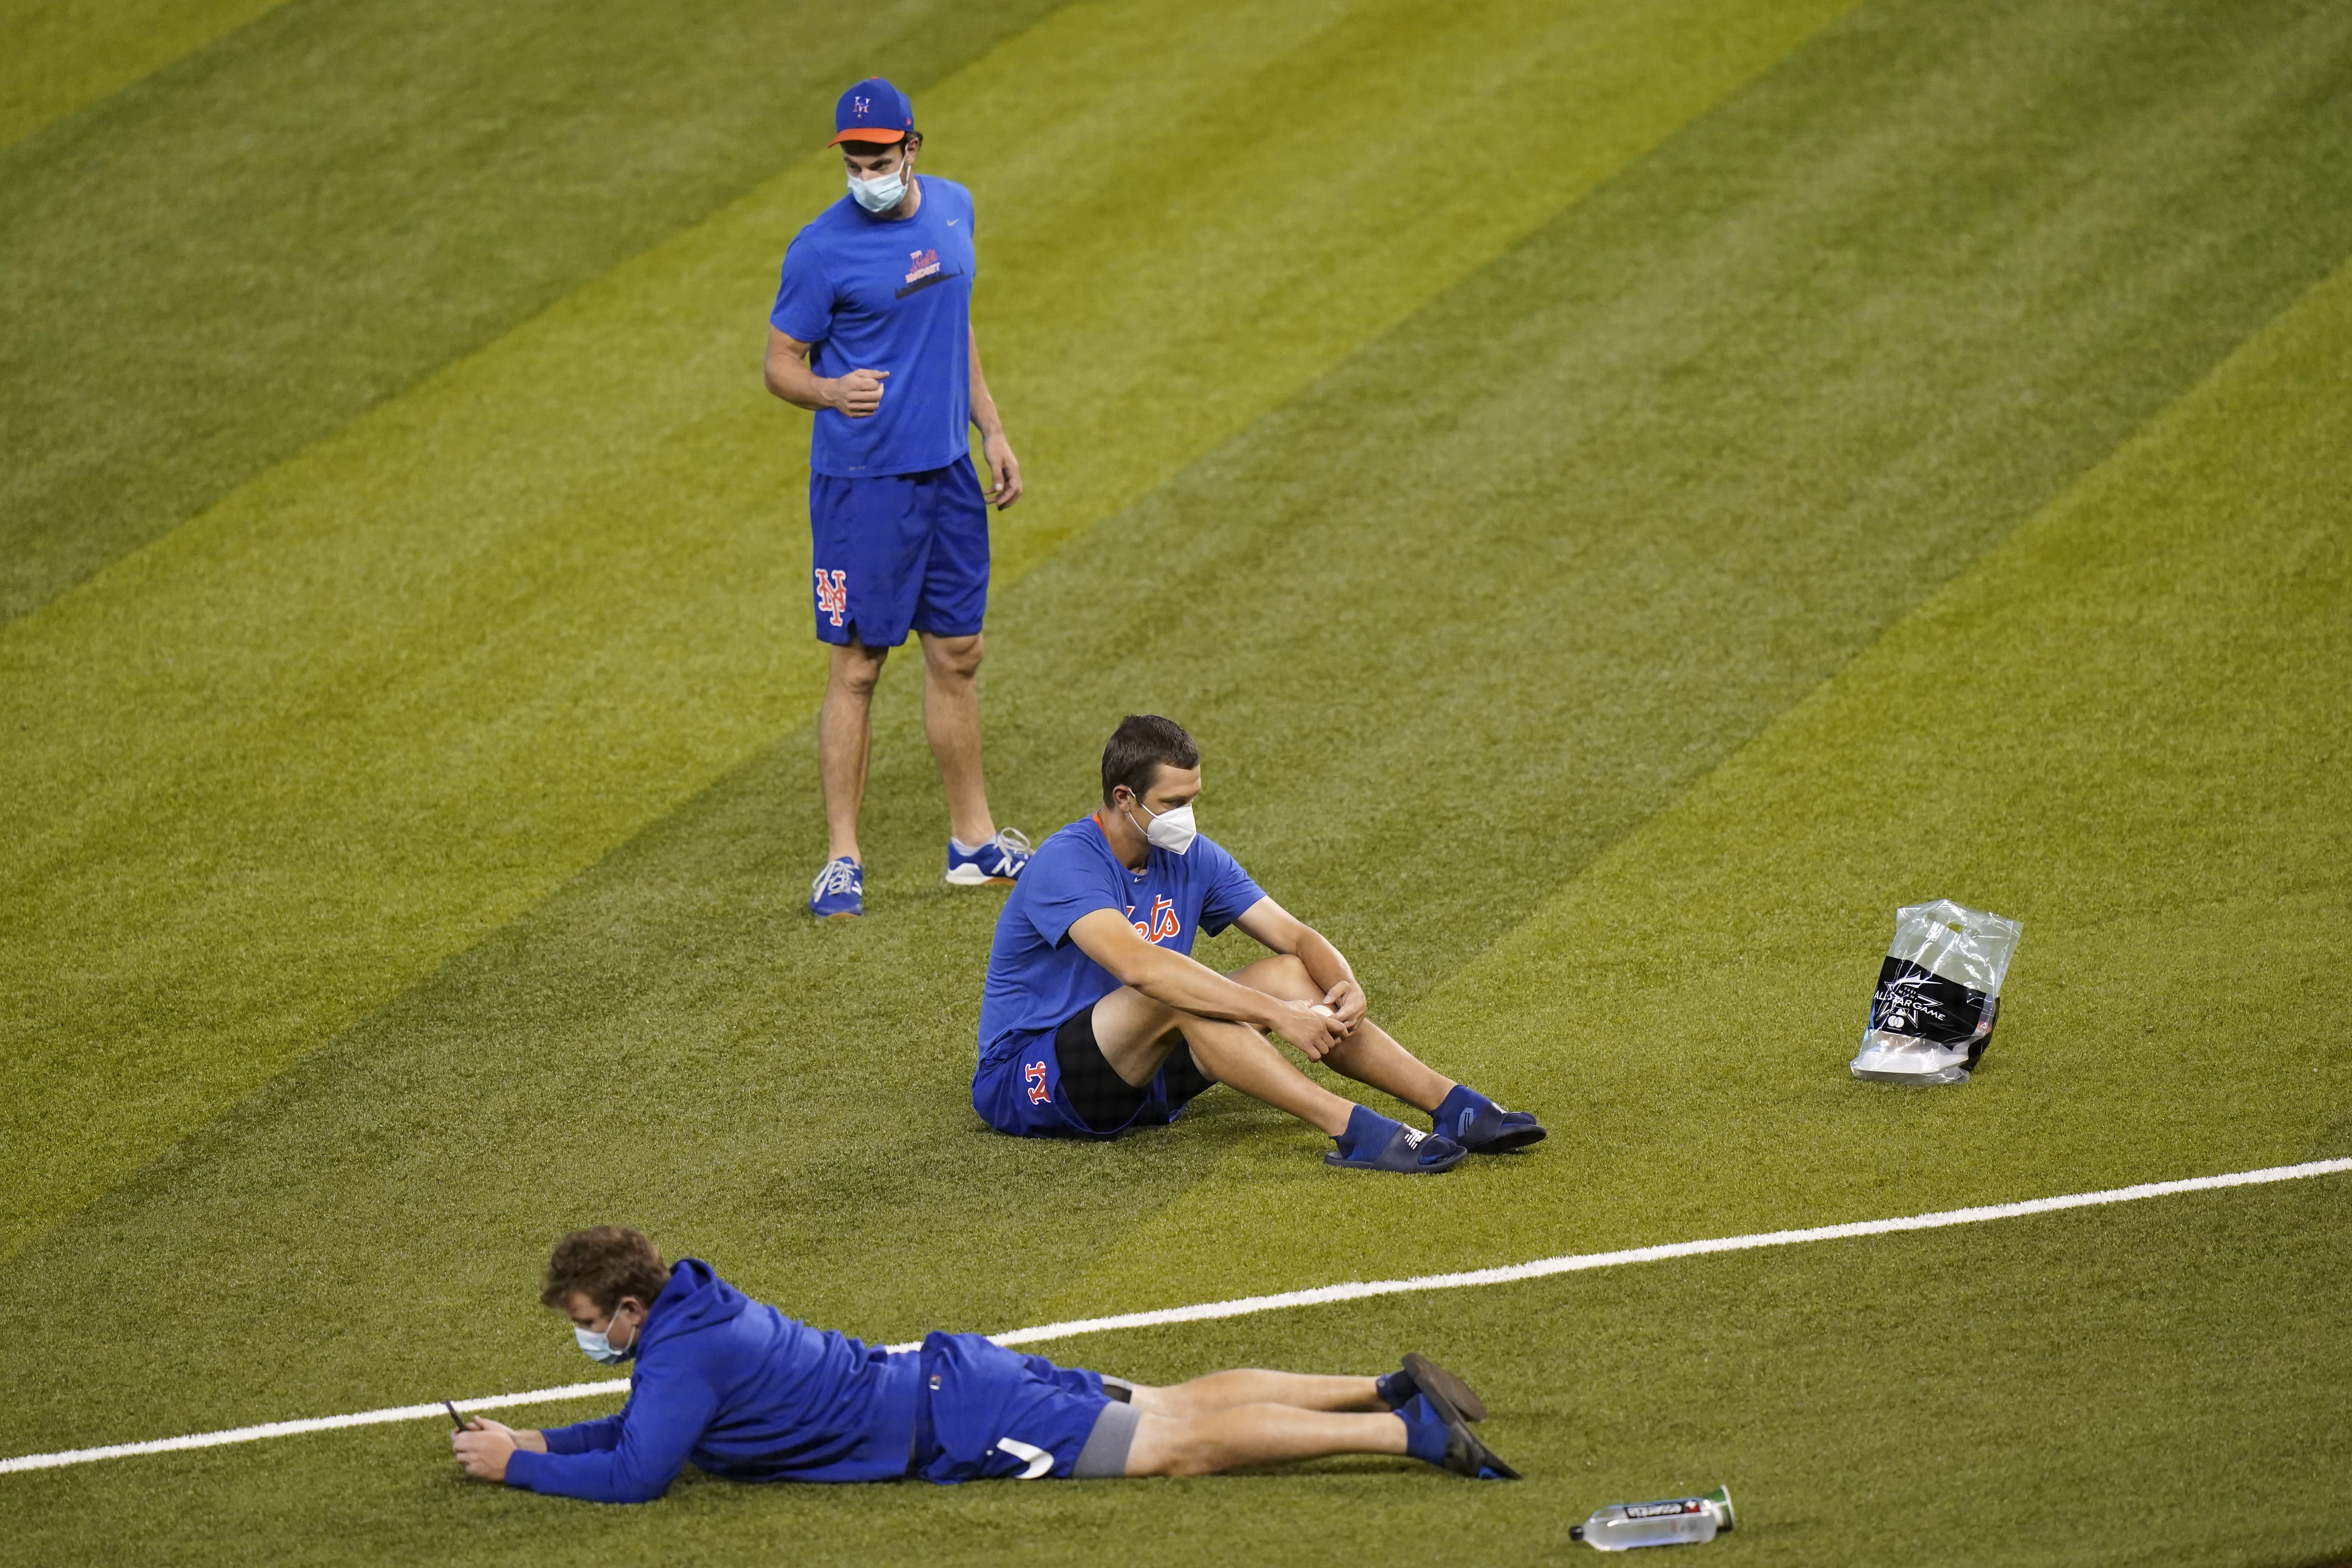 New York Mets players sit on the field before a baseball game against the Miami Marlins, Thursday, Aug. 20, 2020, in Miami. Major League Baseball says the Mets have received two positive tests for COVID-19 in their organization, prompting the postponement of two games against the Marlins. (AP Photo/Lynne Sladky)